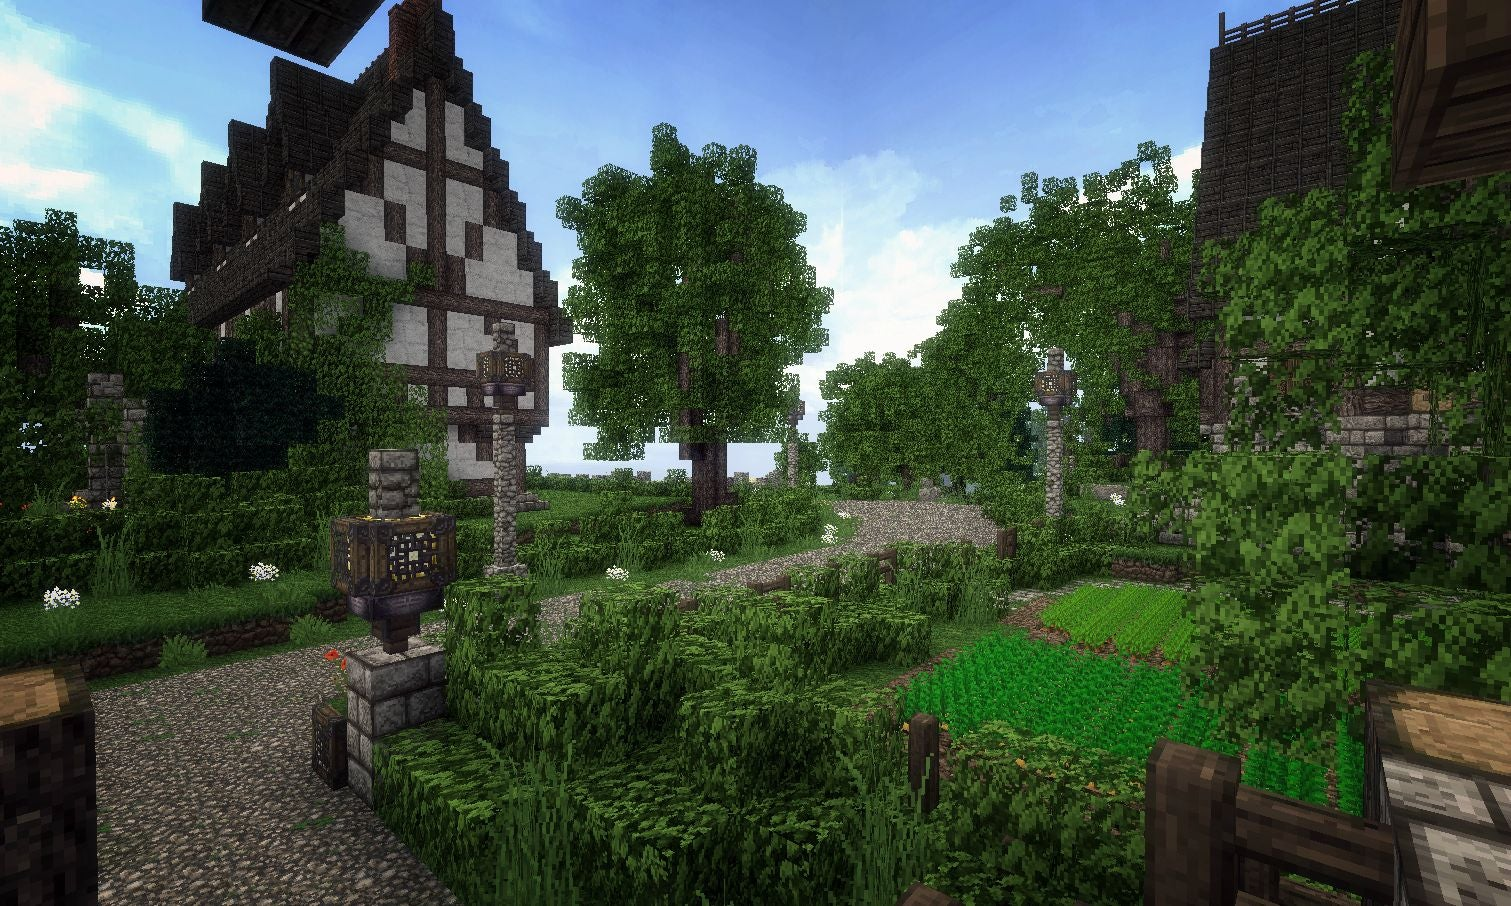 Beautiful Minecraft Village Helps Soldier Deployed in Afghanistan